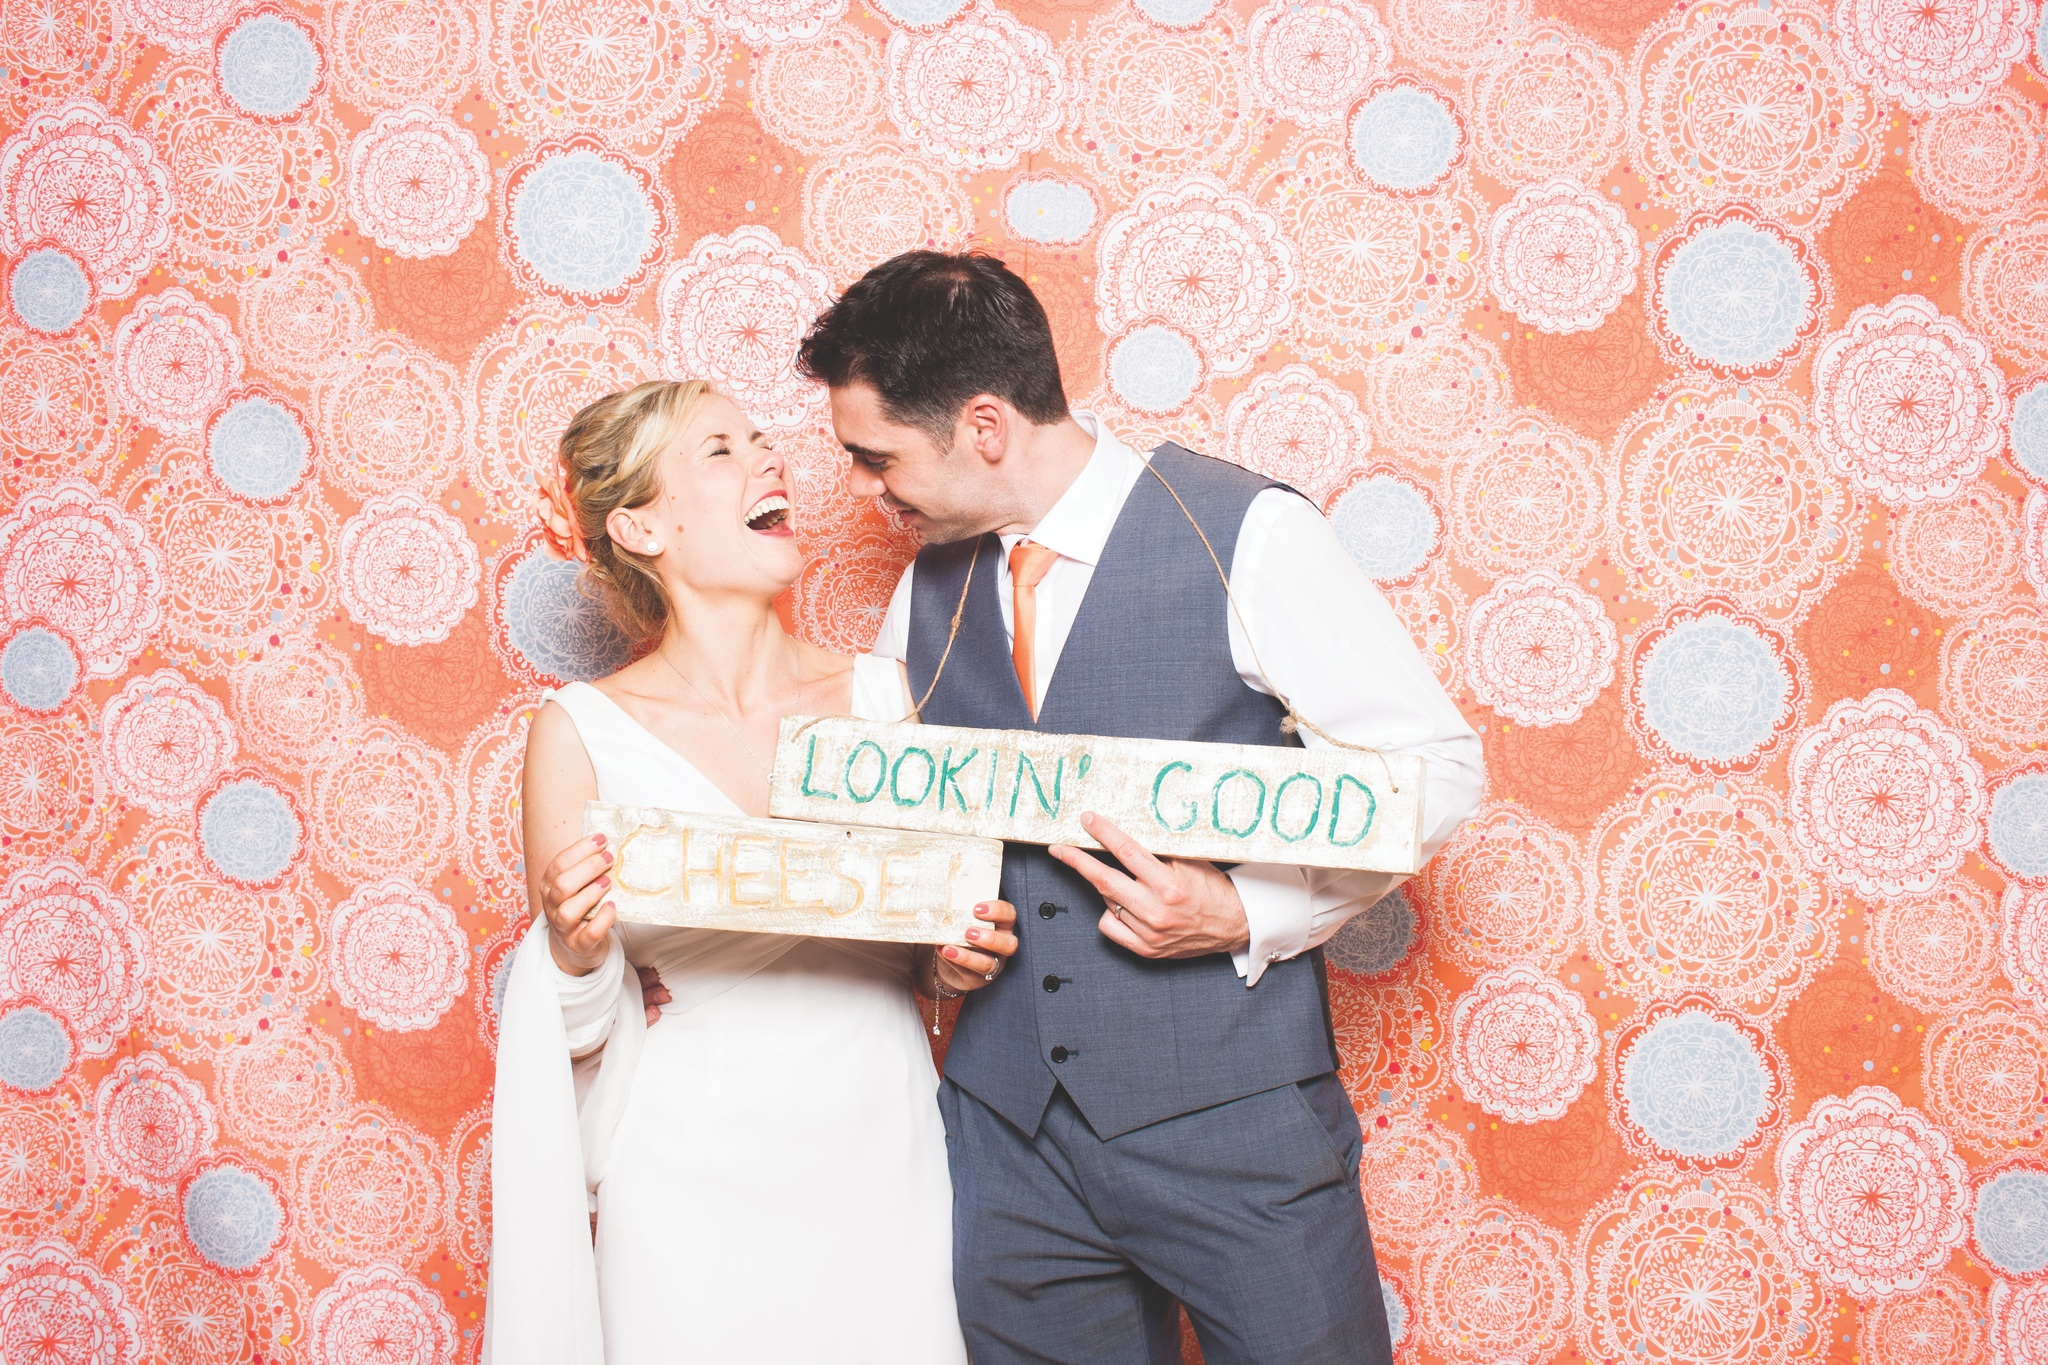 mistakes-avoid-after-wedding-navyblur.co.uk MRb 0151